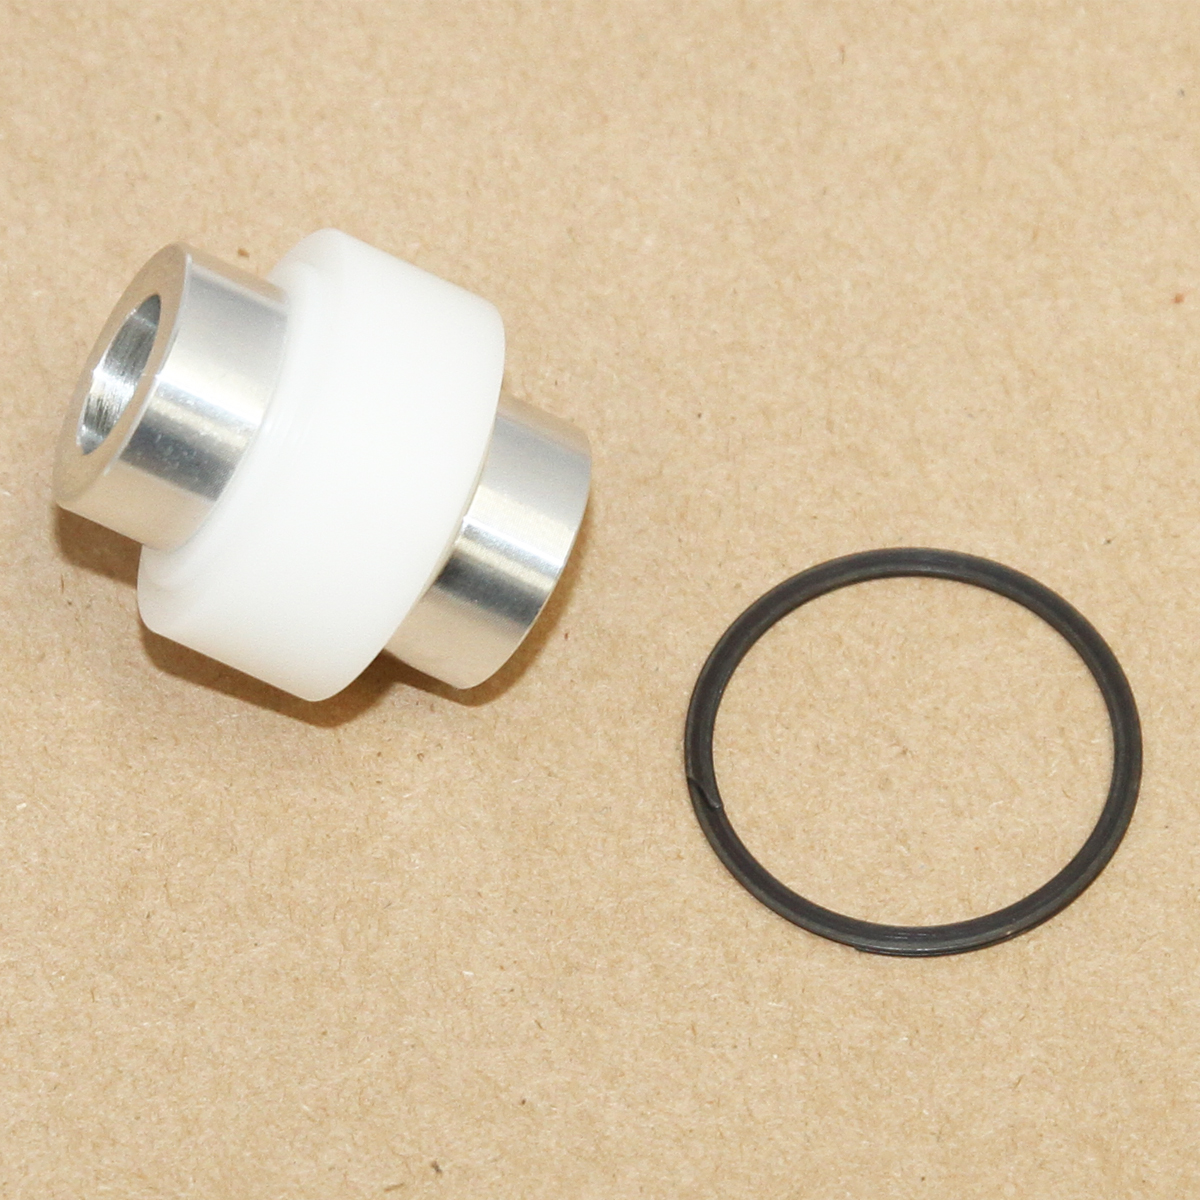 Vertical Link Delrin Bushing With Reducer Sleeves - J&M Products